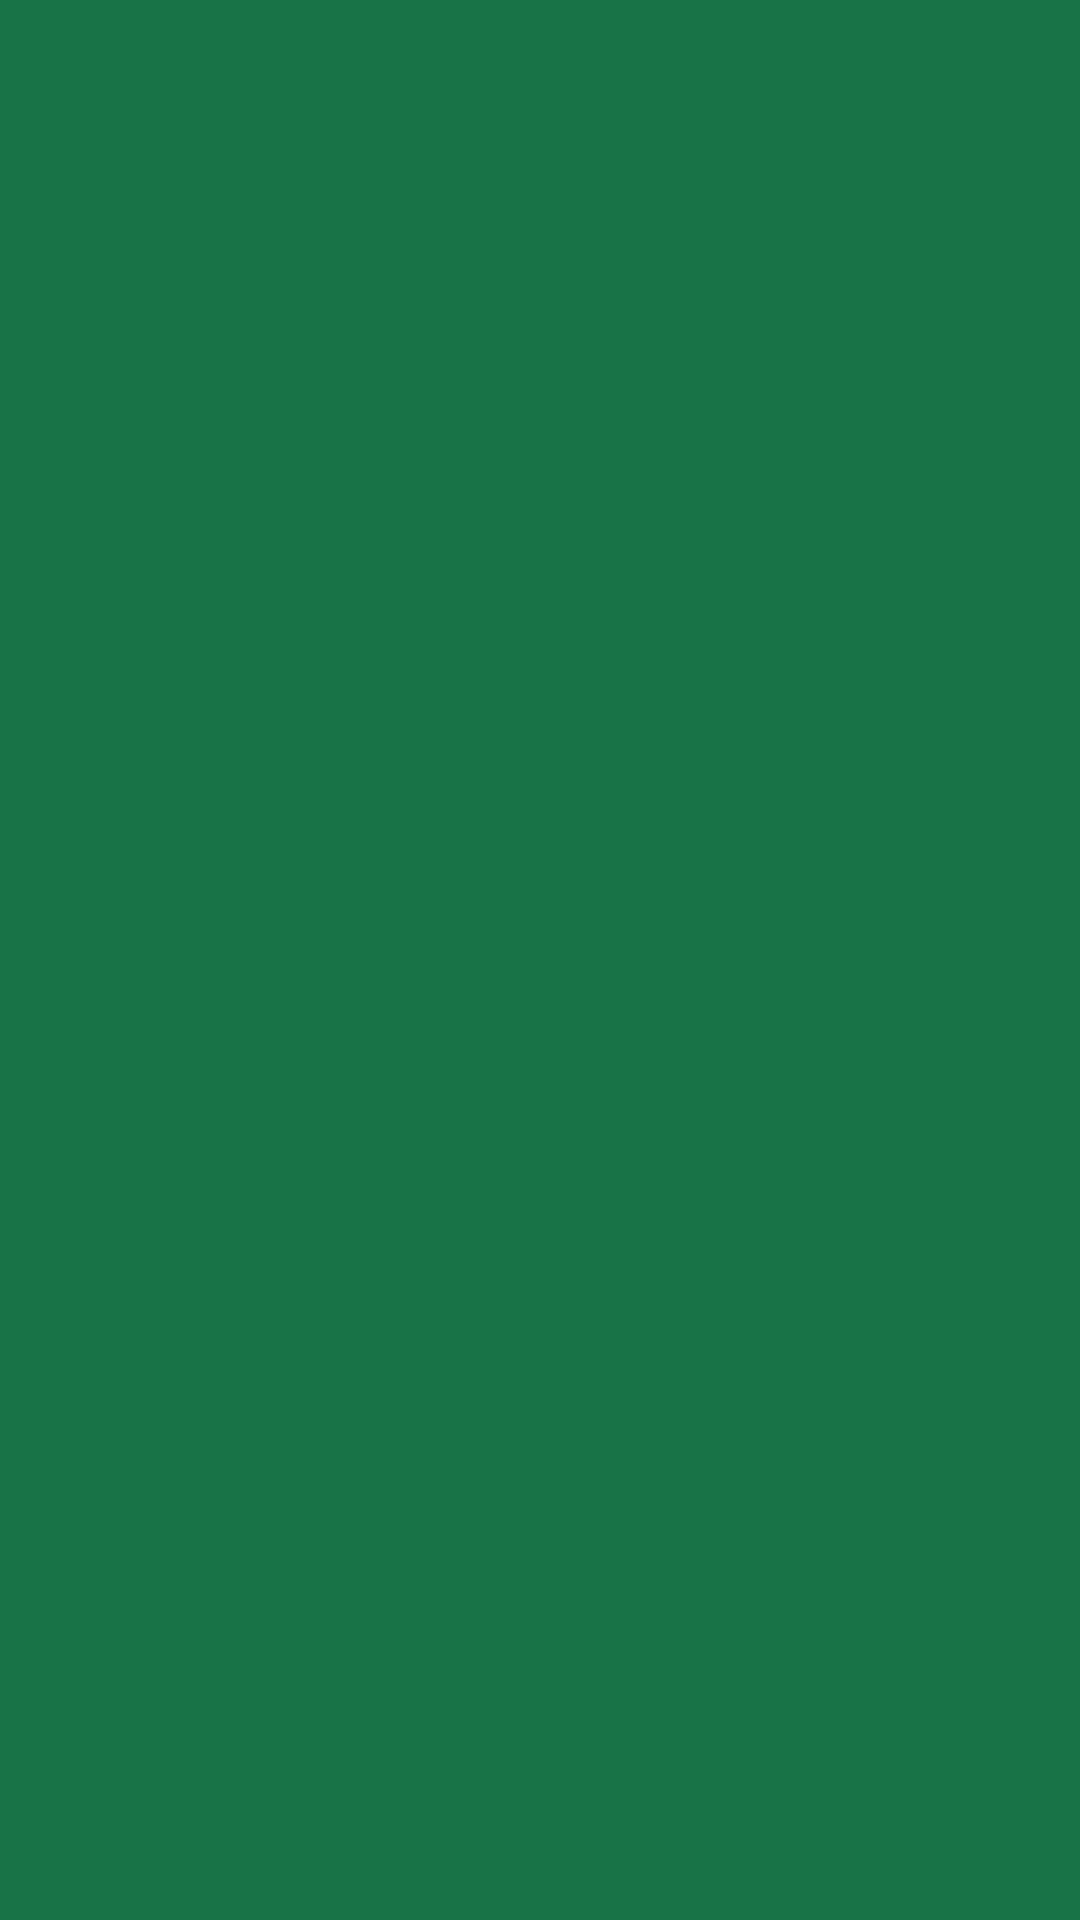 1080x1920 Dark Spring Green Solid Color Background